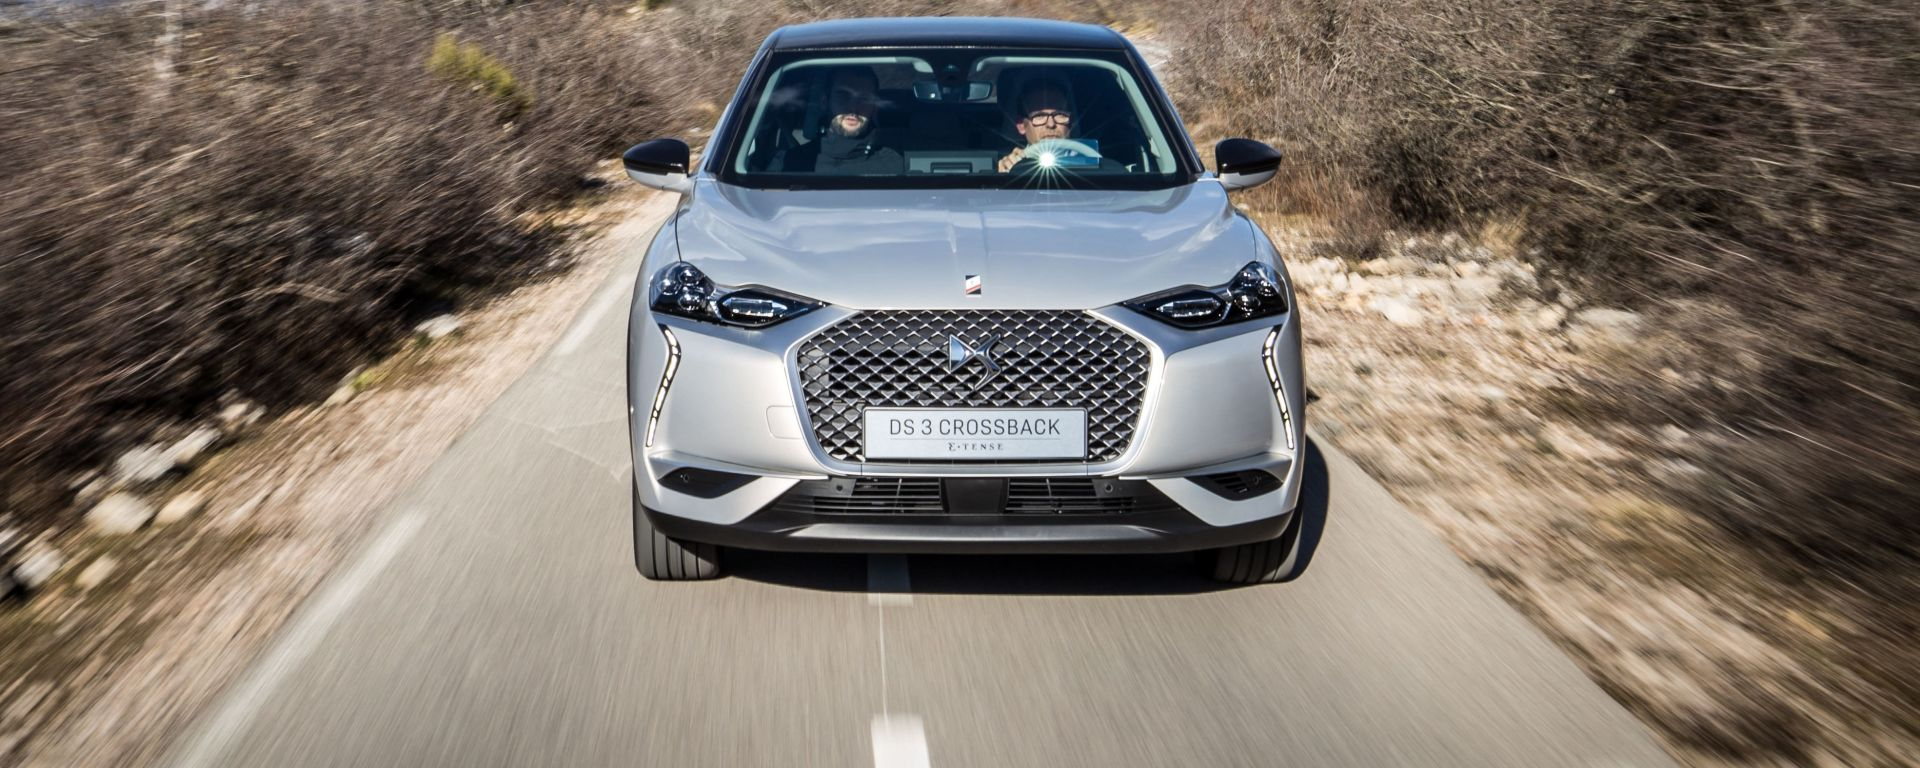 DS3 Crossback Model Year 2022